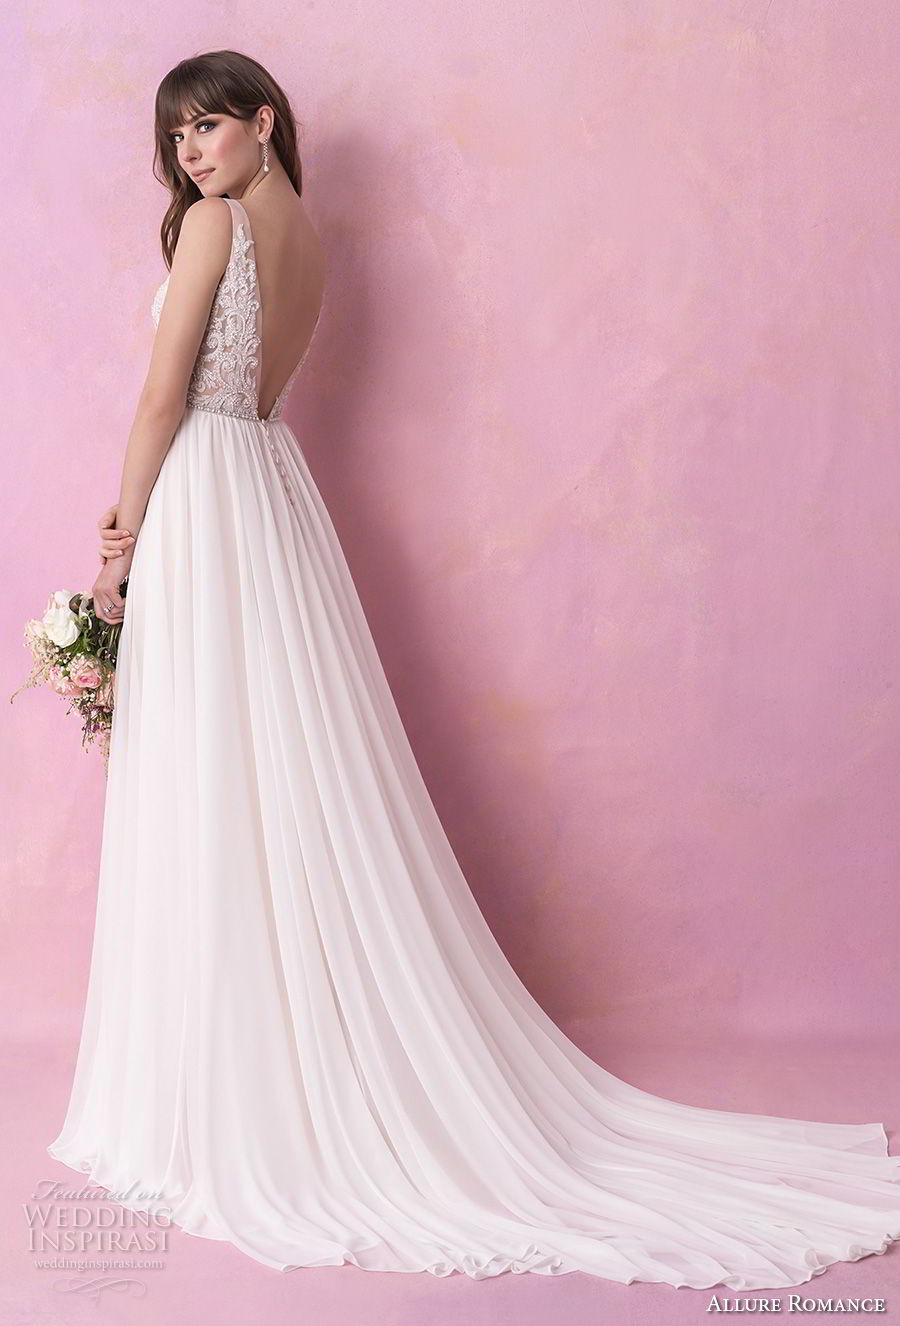 allure romance fall 2018 bridal sleeveless v neck heavily embellished bodice romantic soft a  line wedding dress open v back chapel train (14) bv